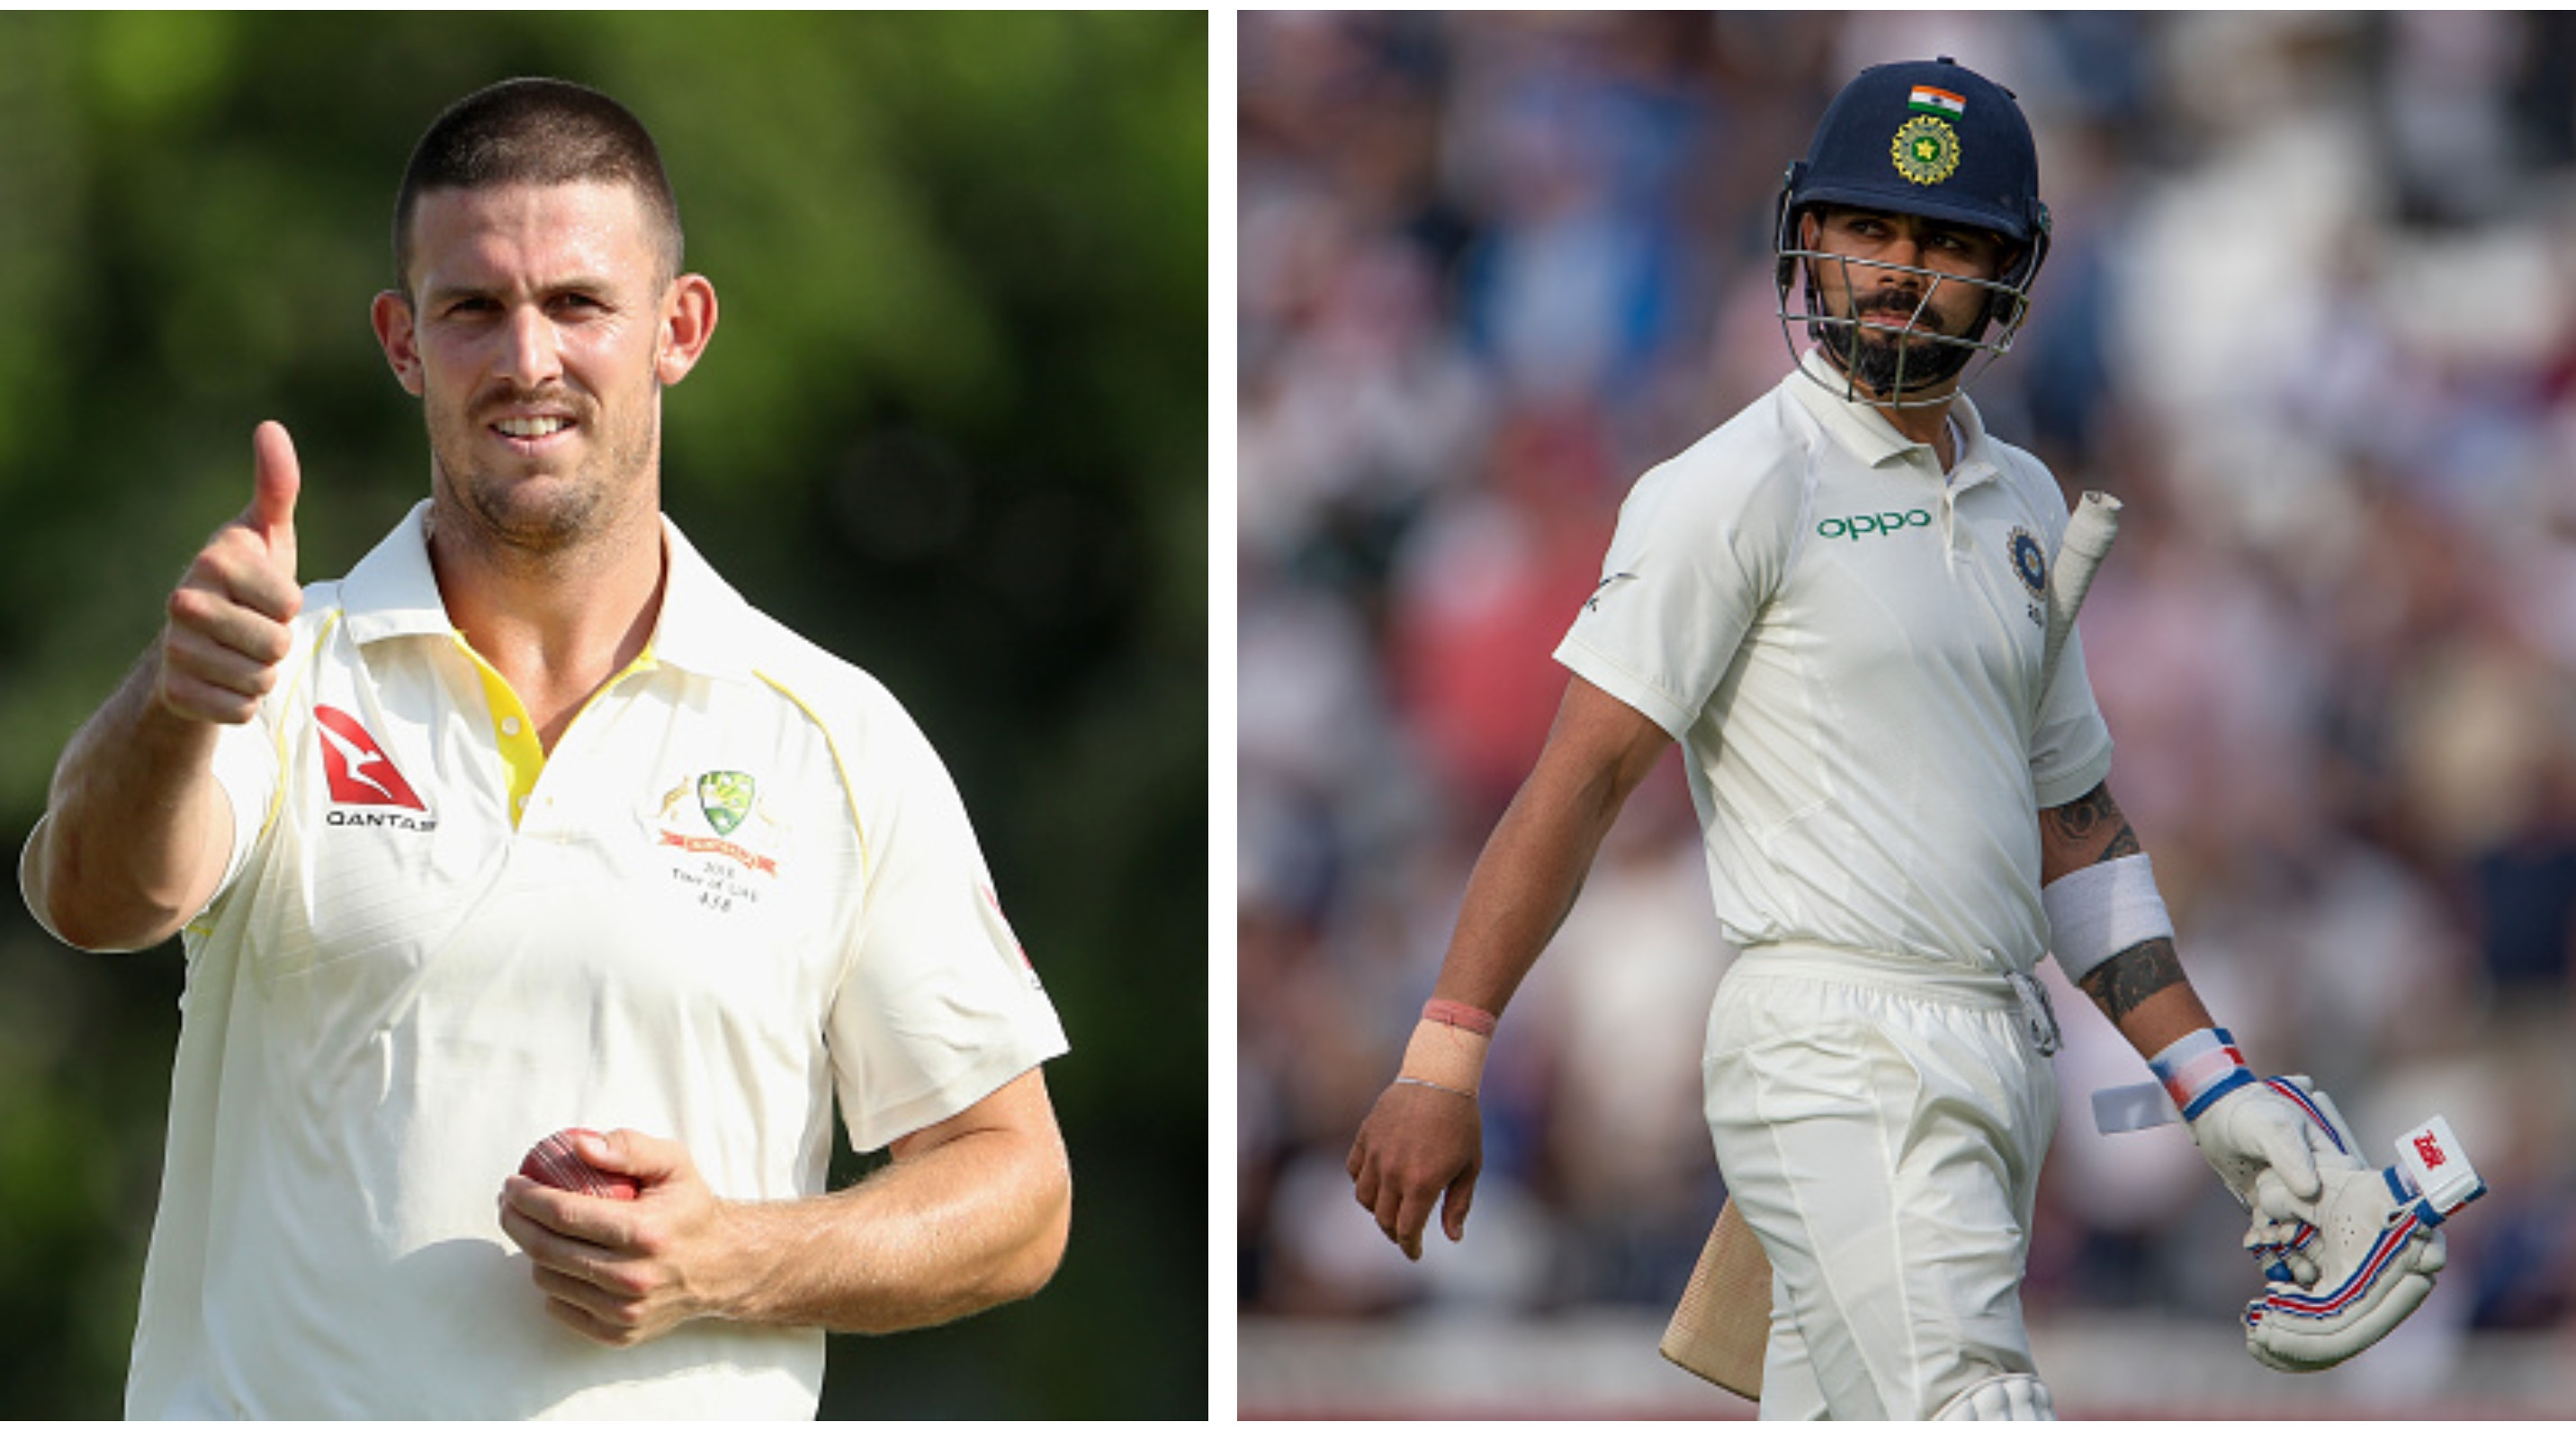 AUS v IND 2018-19: Plans firmly in place to stop Virat Kohli, warns Mitchell Marsh